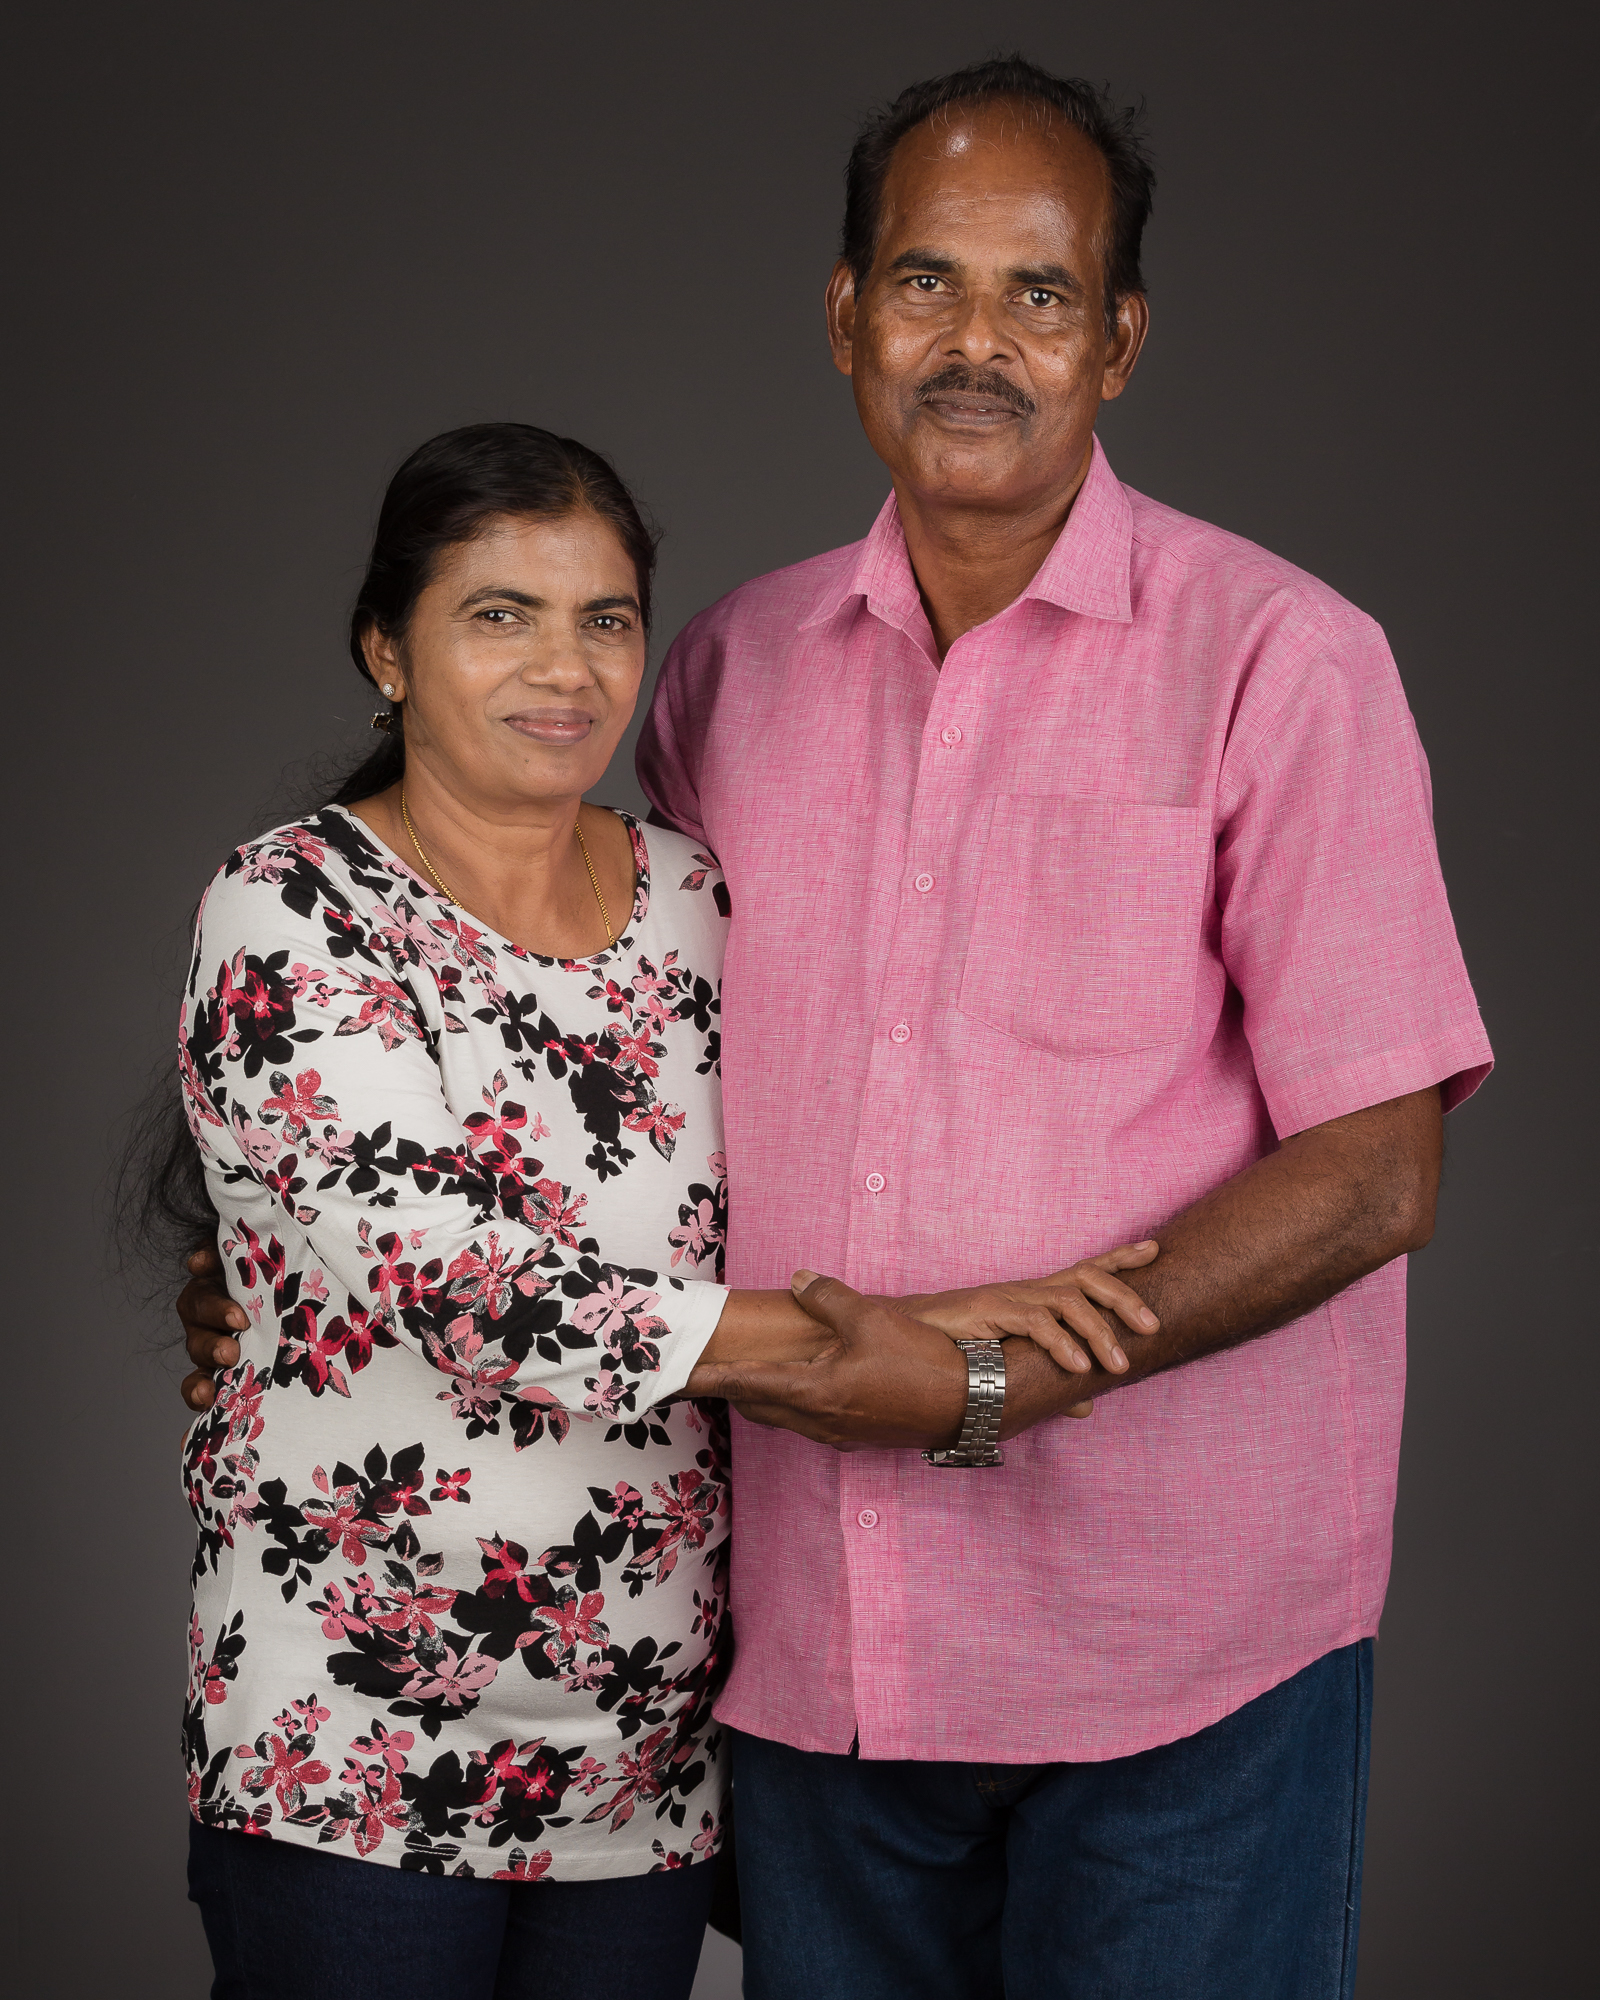 Having your children's Grandparents at your family photoshoot really adds to the value of your family portraits. YourFamilyDeserveThis.com